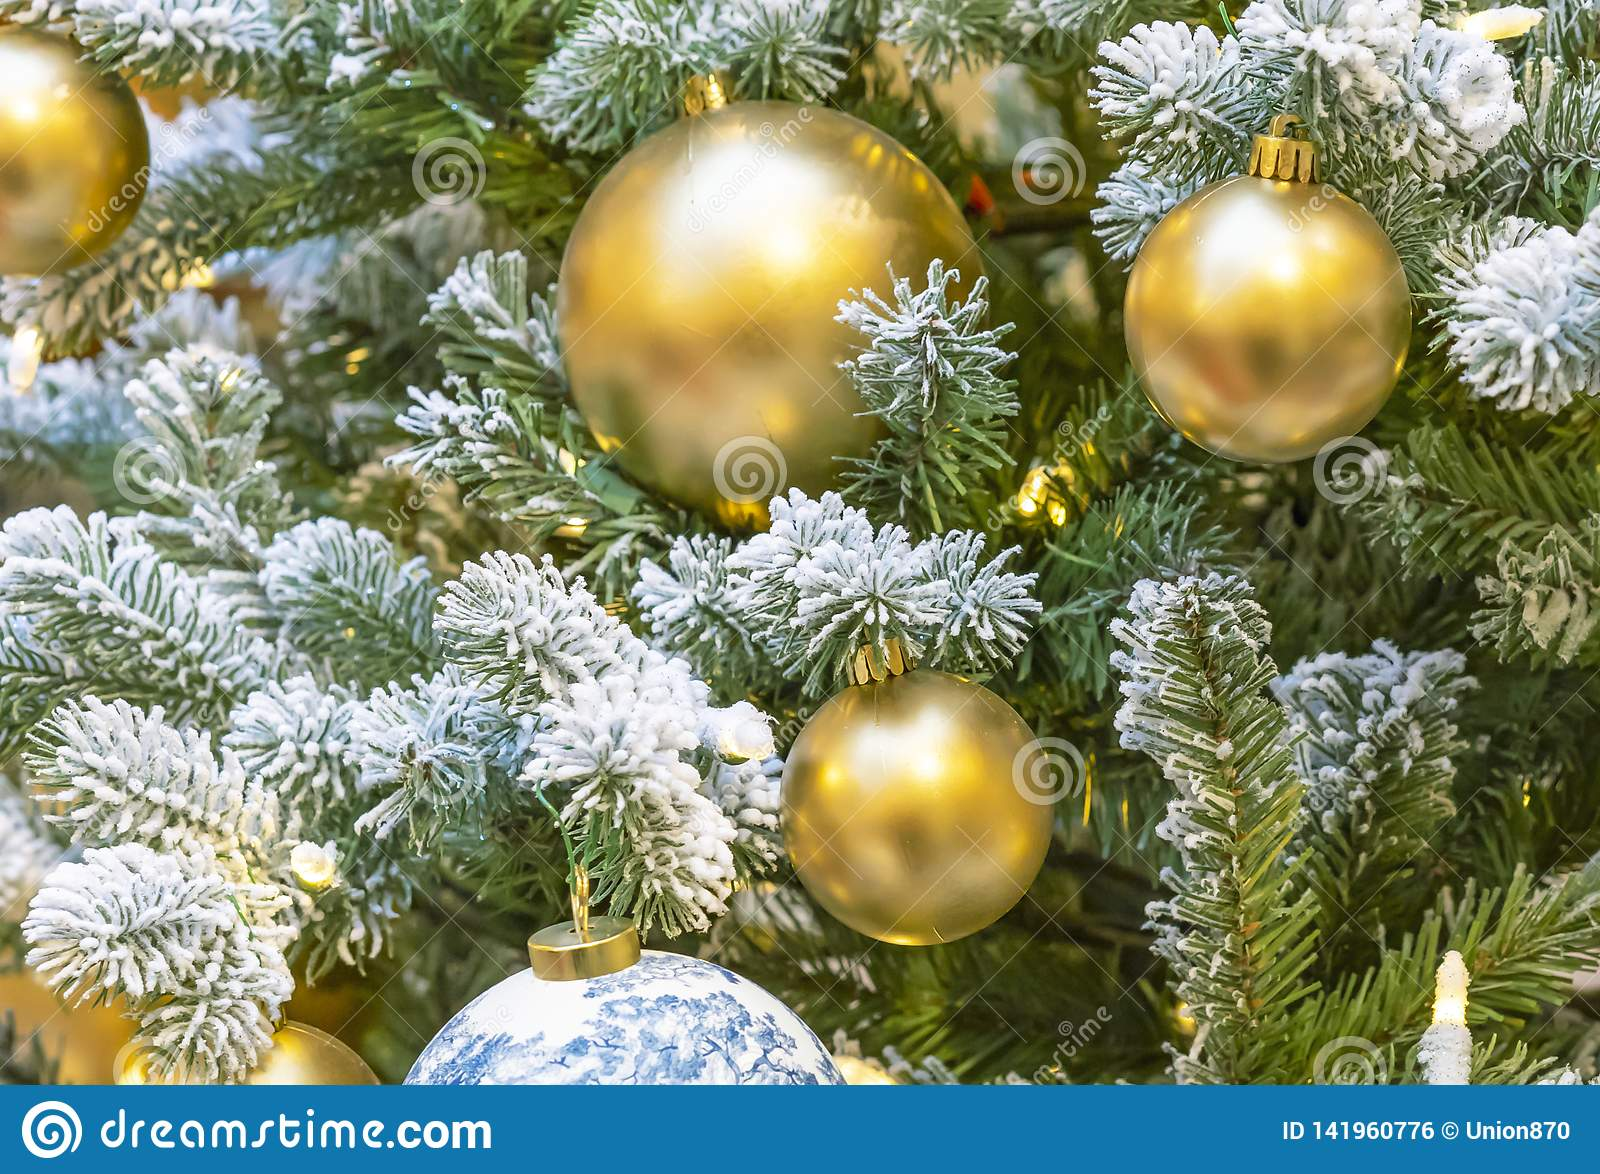 Golden balls and a garland on a snowy Christmas tree